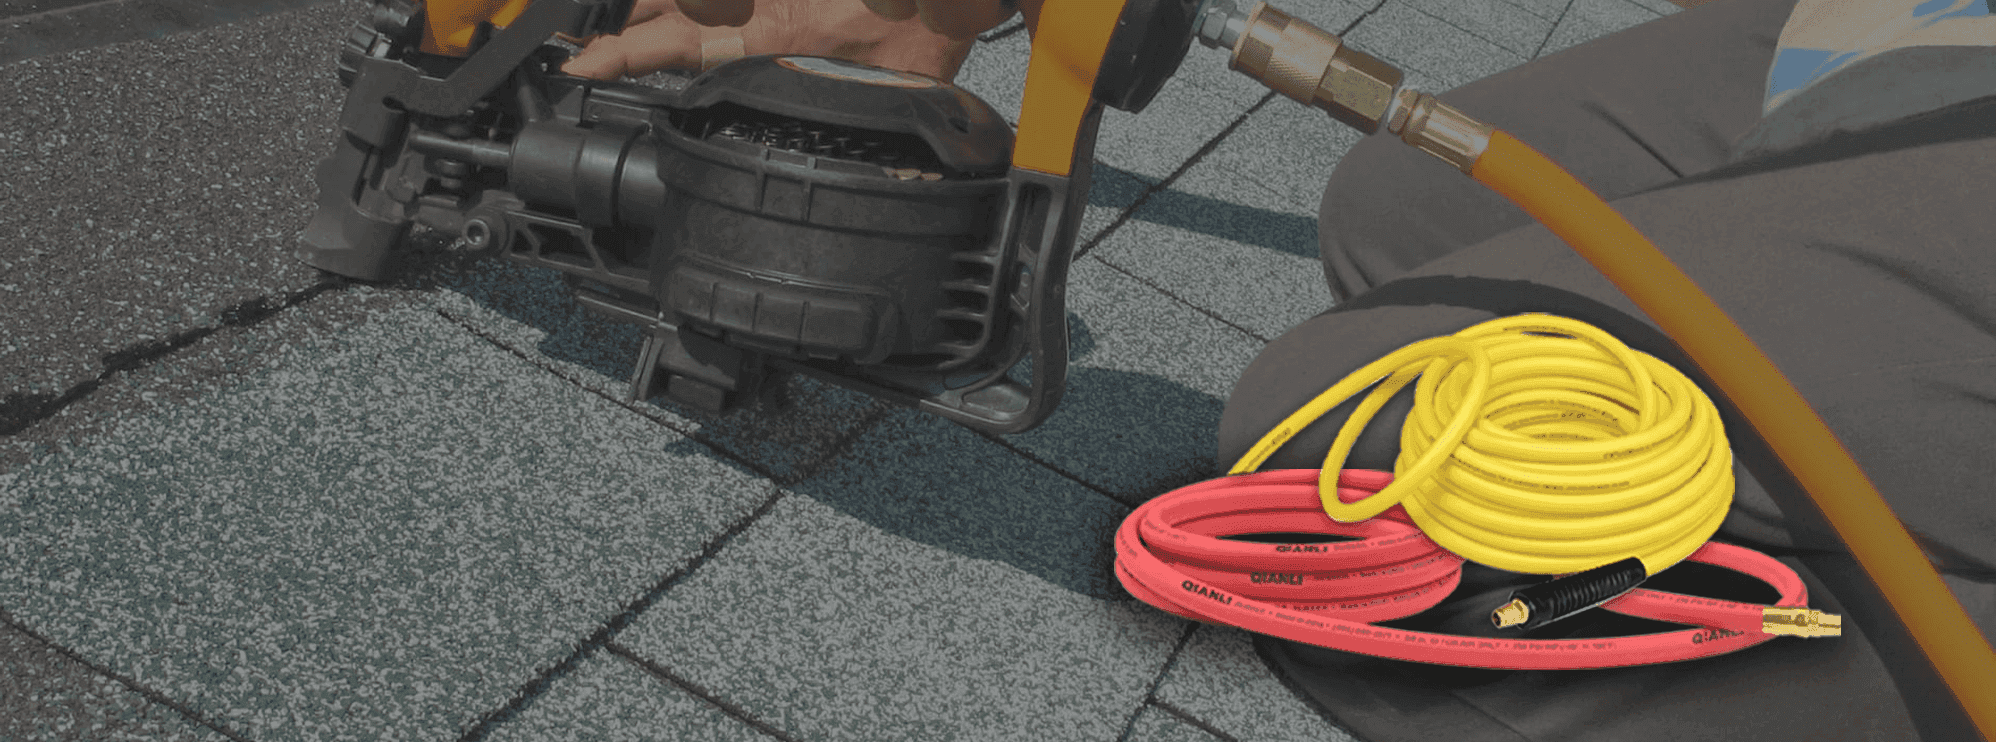 There are two rolls of rubber air hoses with red and yellow color.